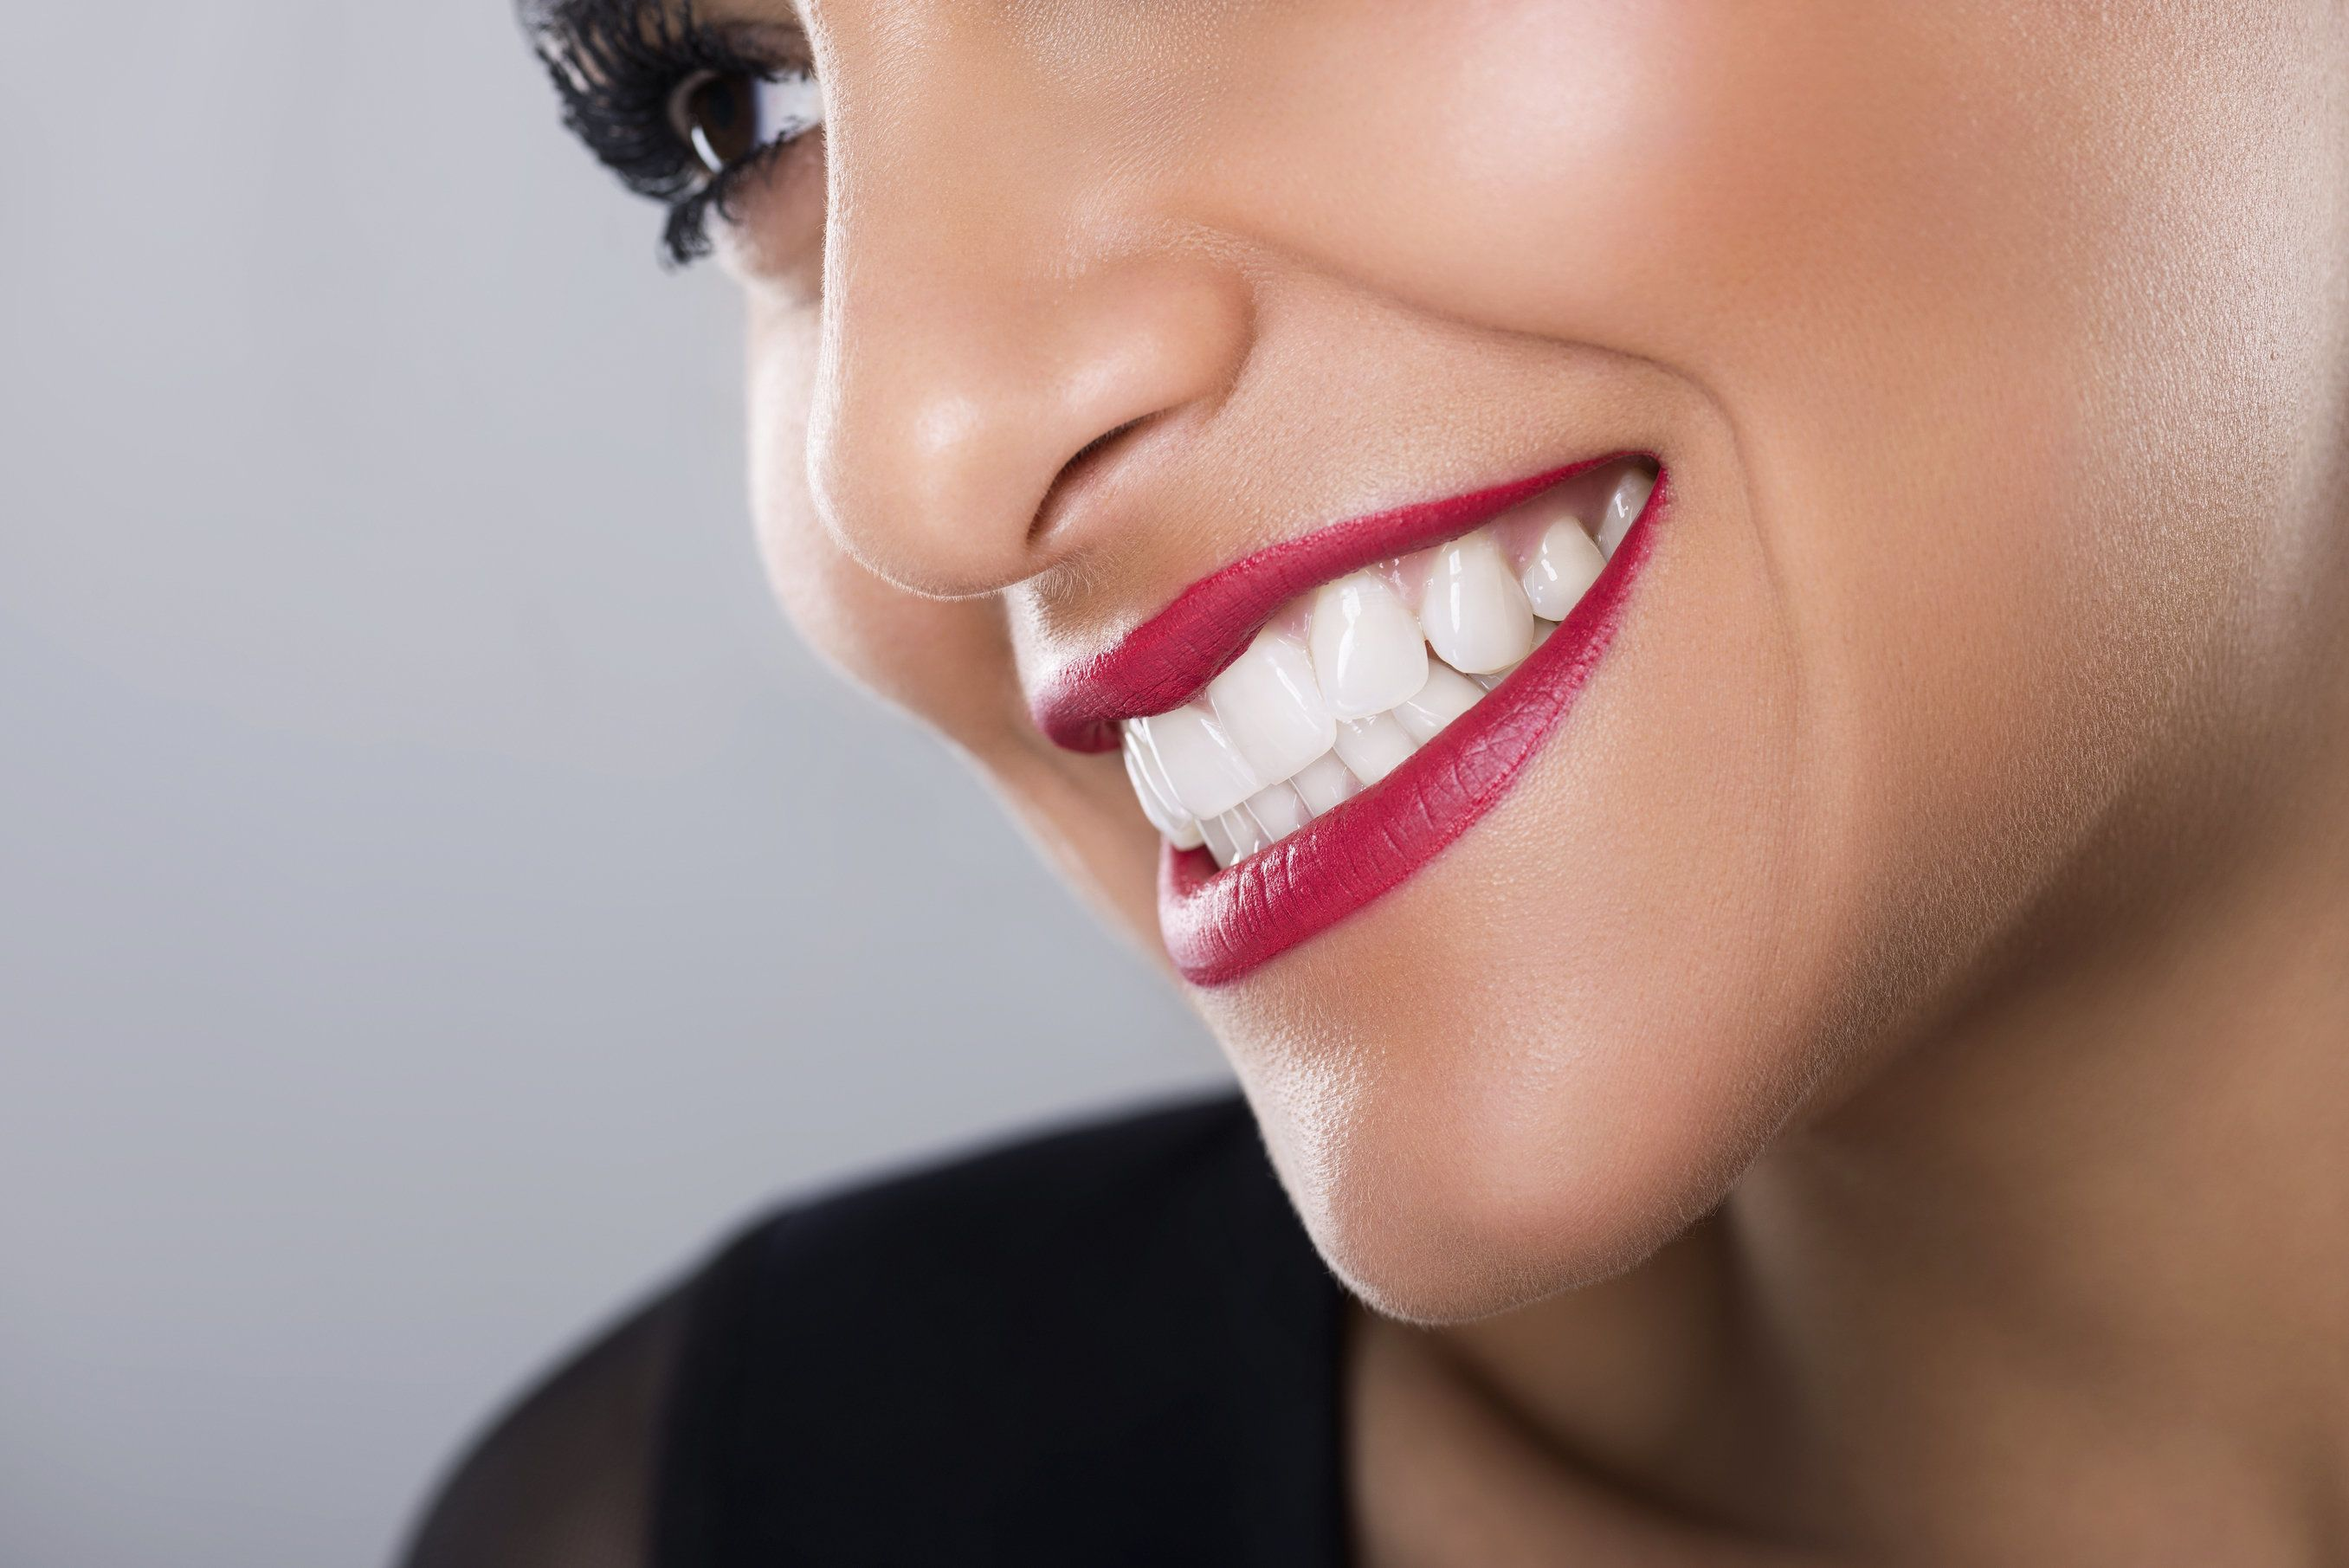 A woman with a beautiful smile after treatment for a twisted tooth